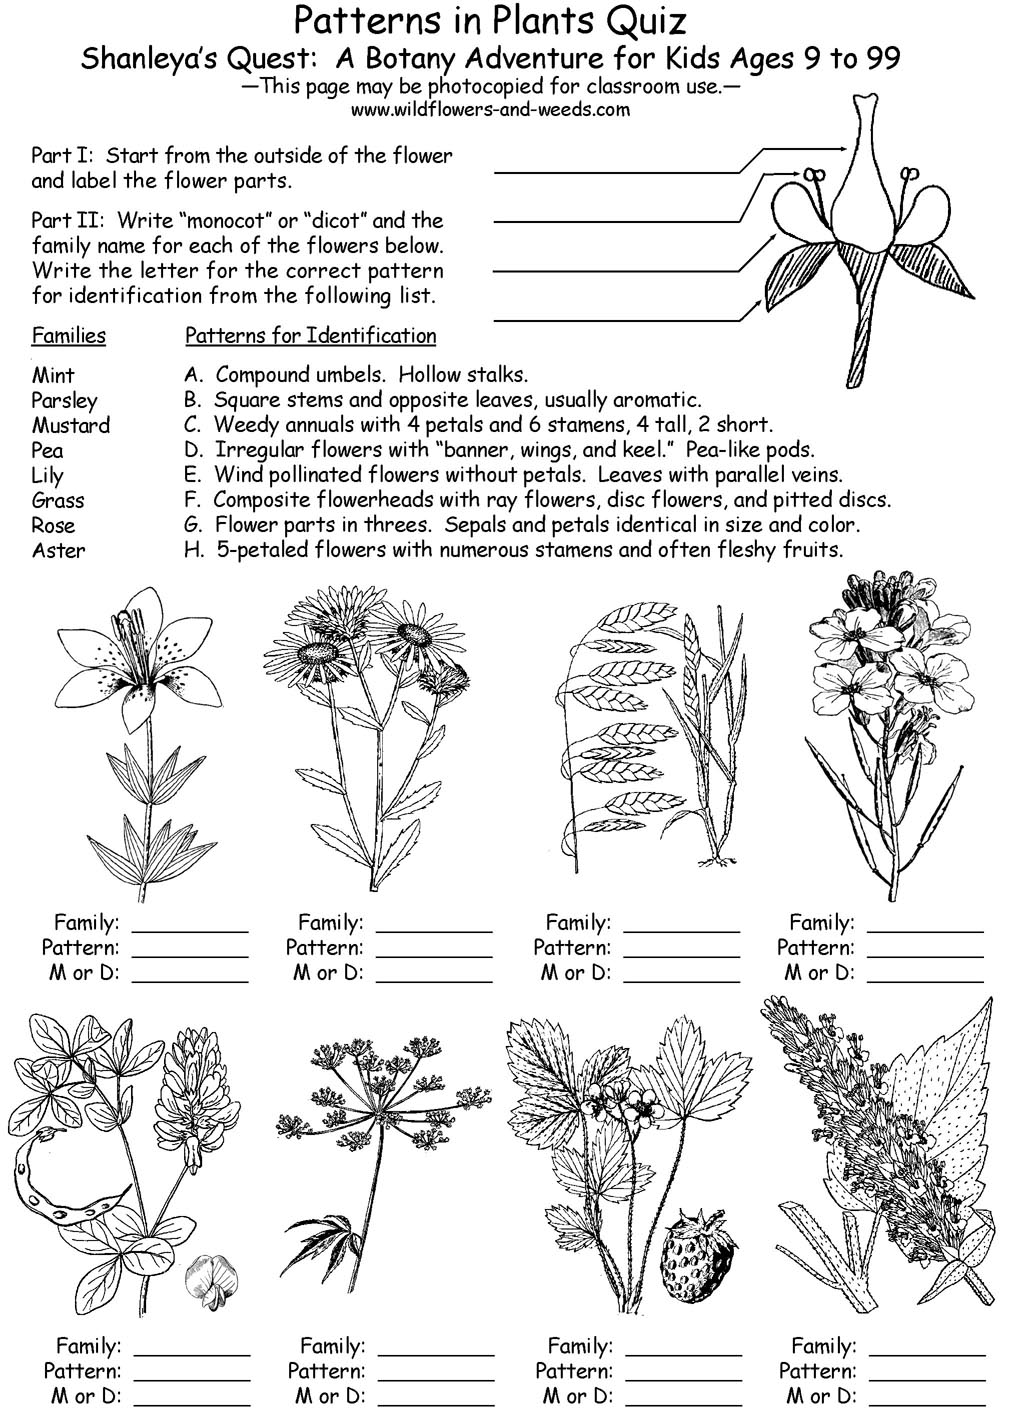 ... Worksheet High School lesson plans: science: biology: botany: patterns